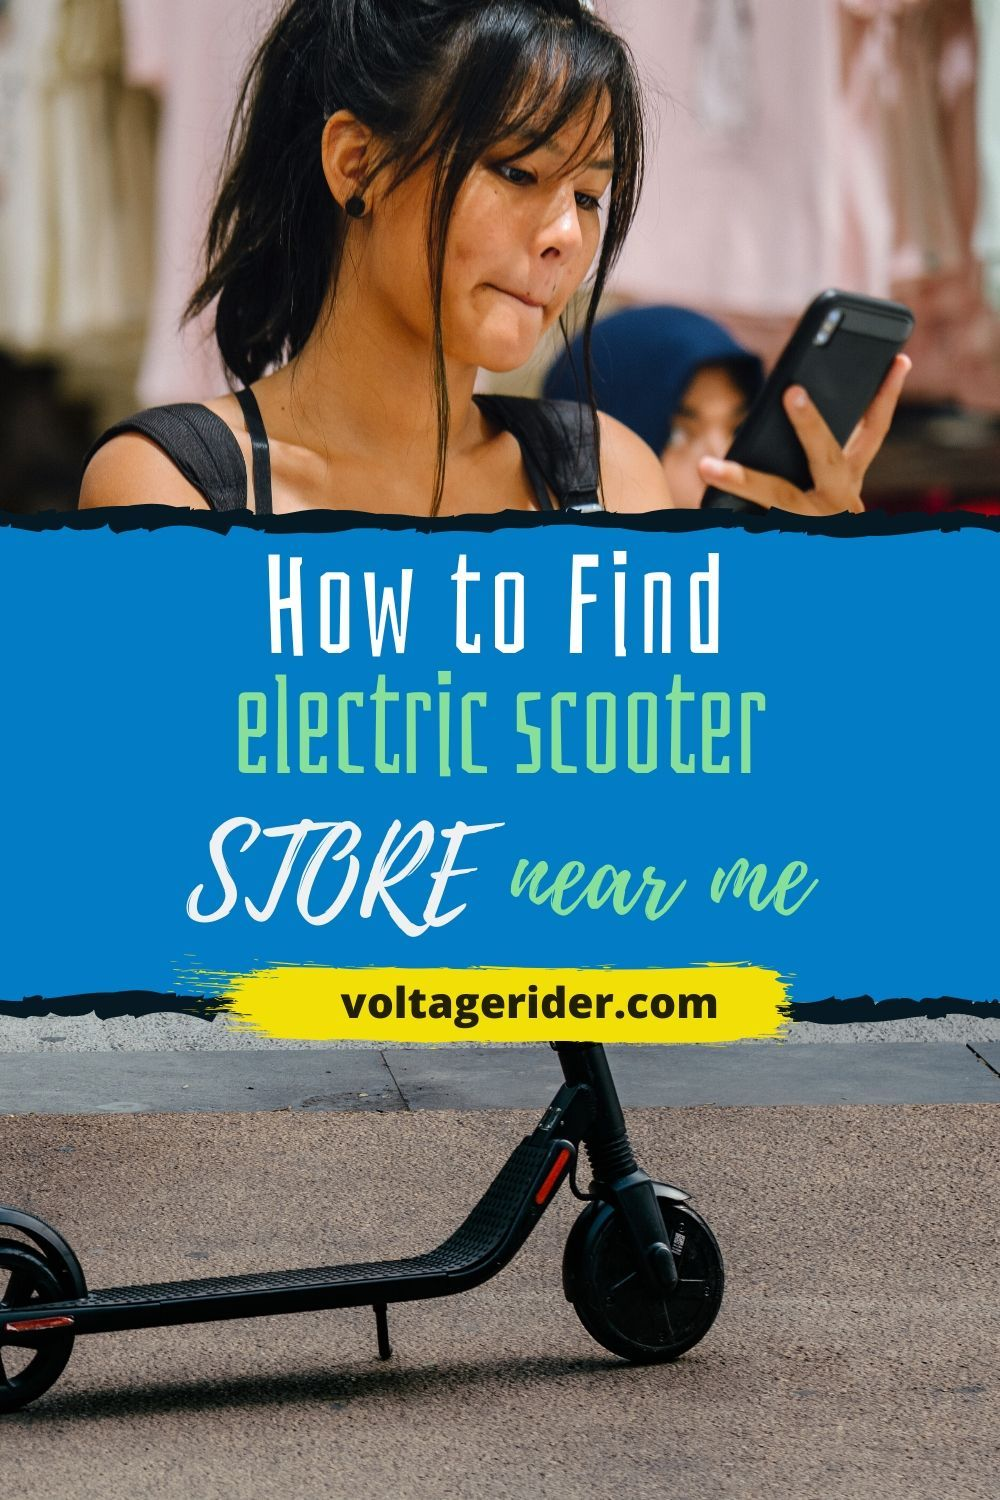 Pin on Girls on Electric Scooters